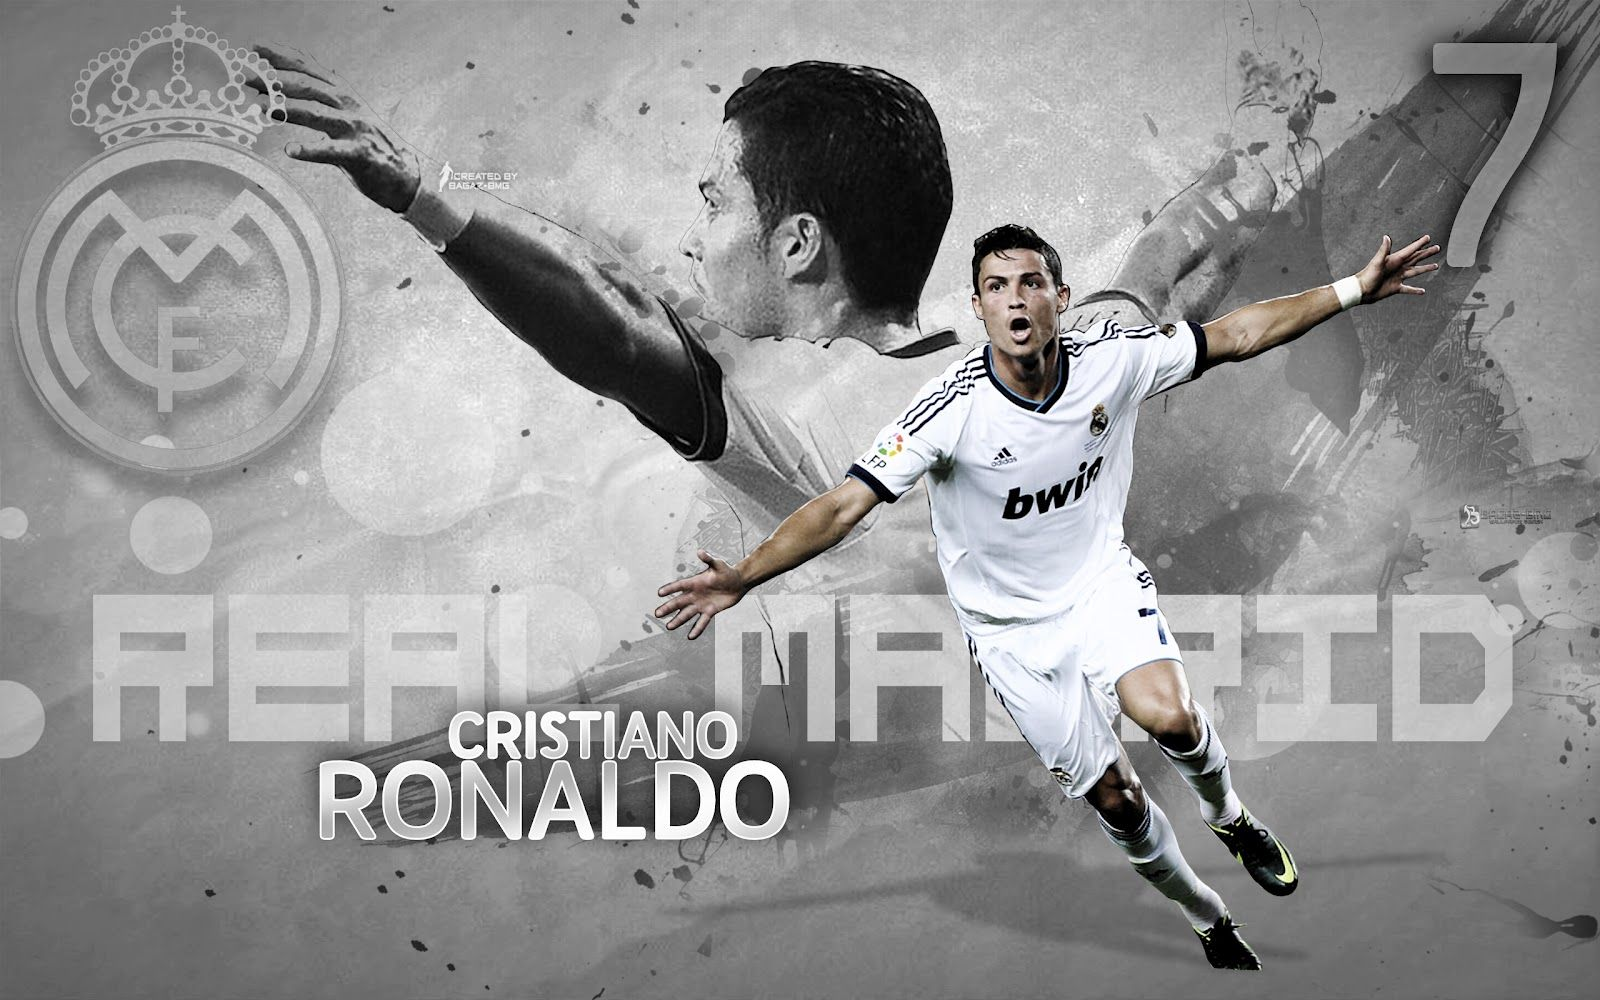 Super cristiano ronaldo real madrid 2012 2013 hd best wallpapers super cristiano ronaldo real madrid 2012 2013 hd best wallpapers voltagebd Images